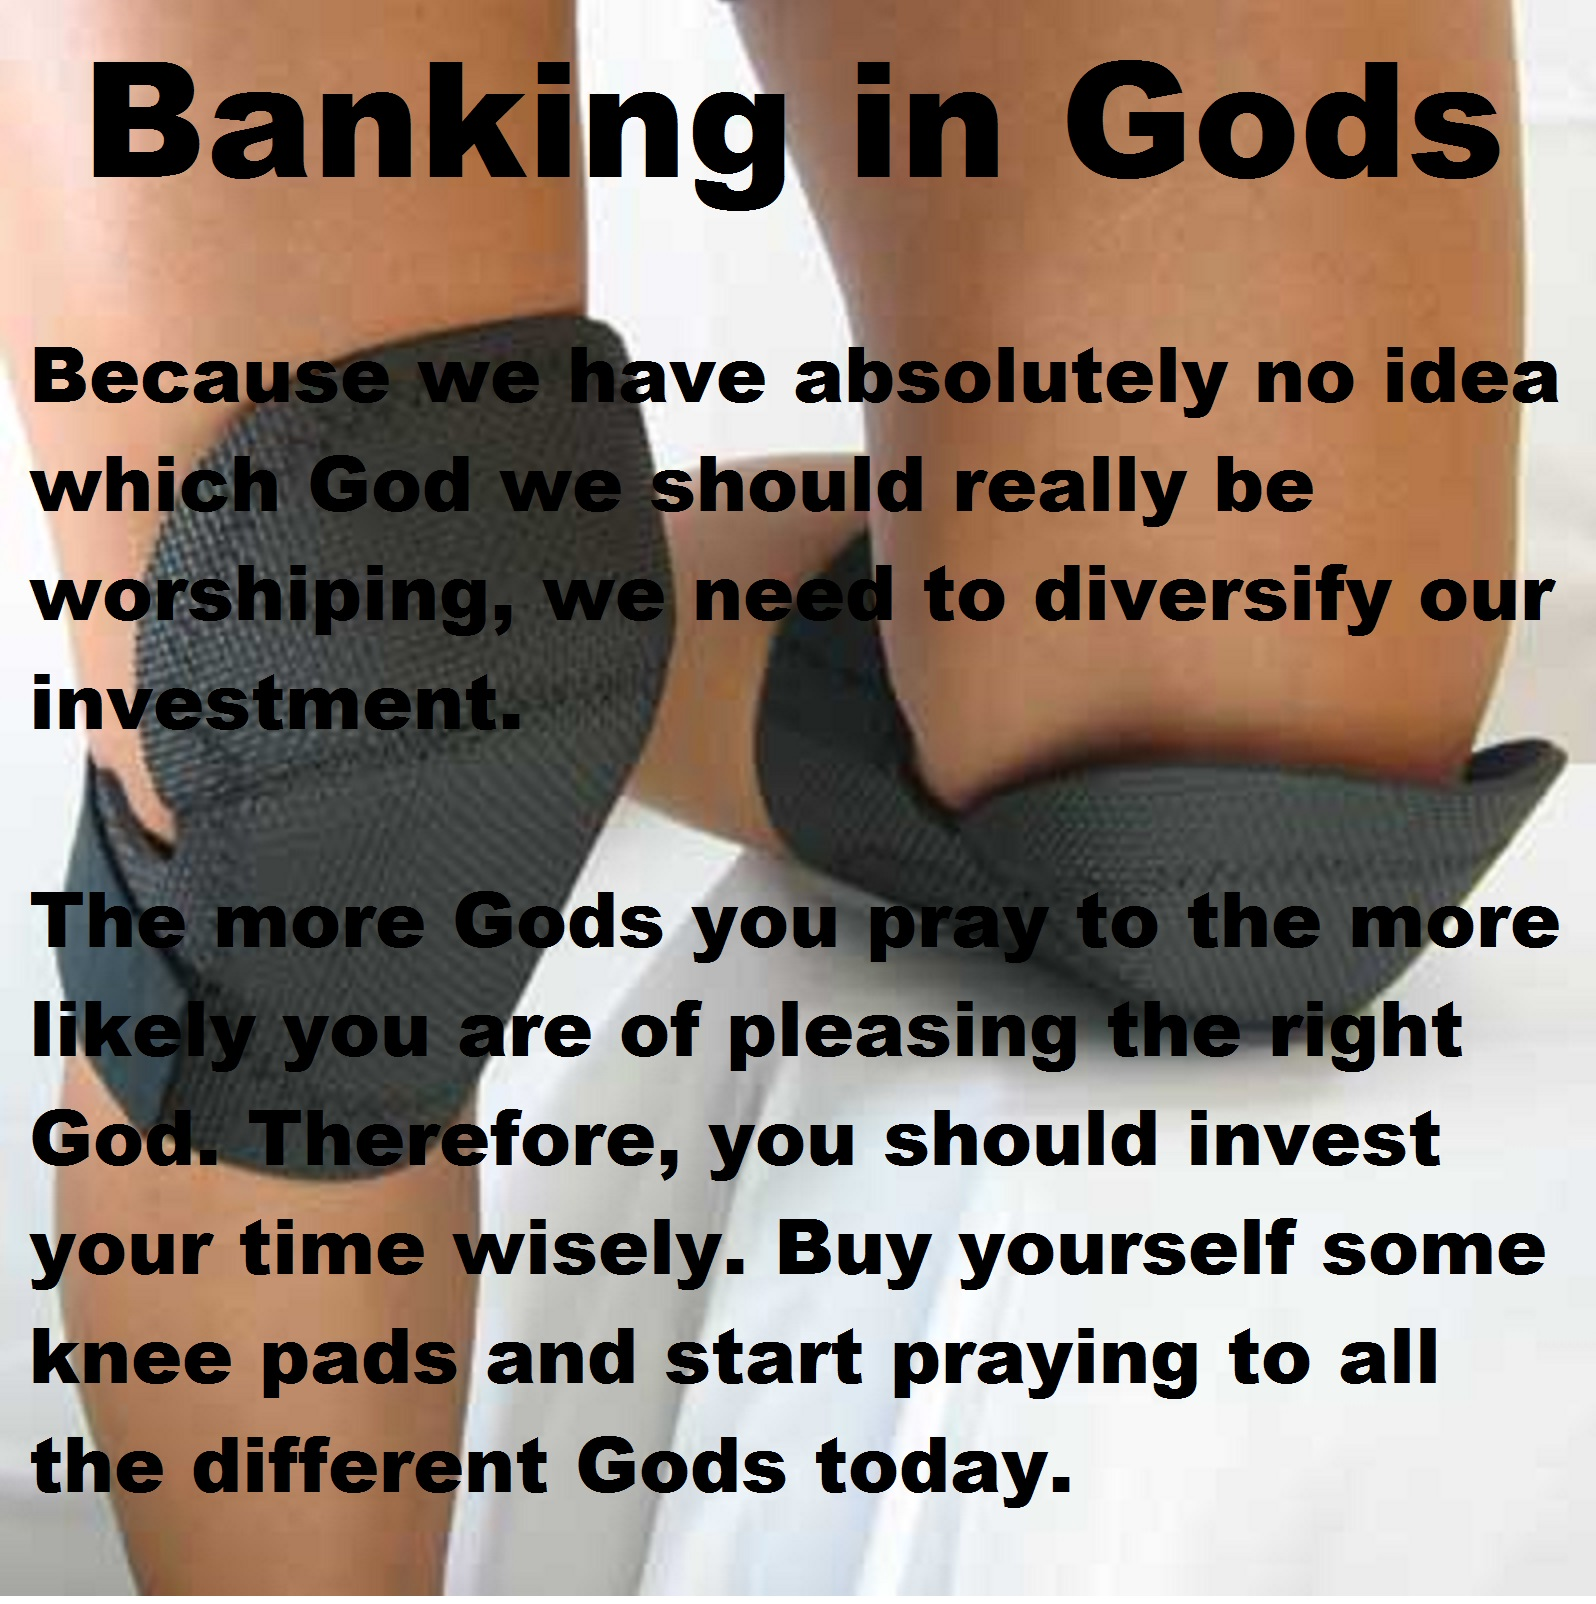 Because we have absolutely no idea which God we should really be worshiping, we need to diversify our investment. The more Gods you pray to the more likely you are of pleasing the right God. Therefore, you should invest your time wisely. Buy yourself some knee pads and start praying to all the different Gods today.